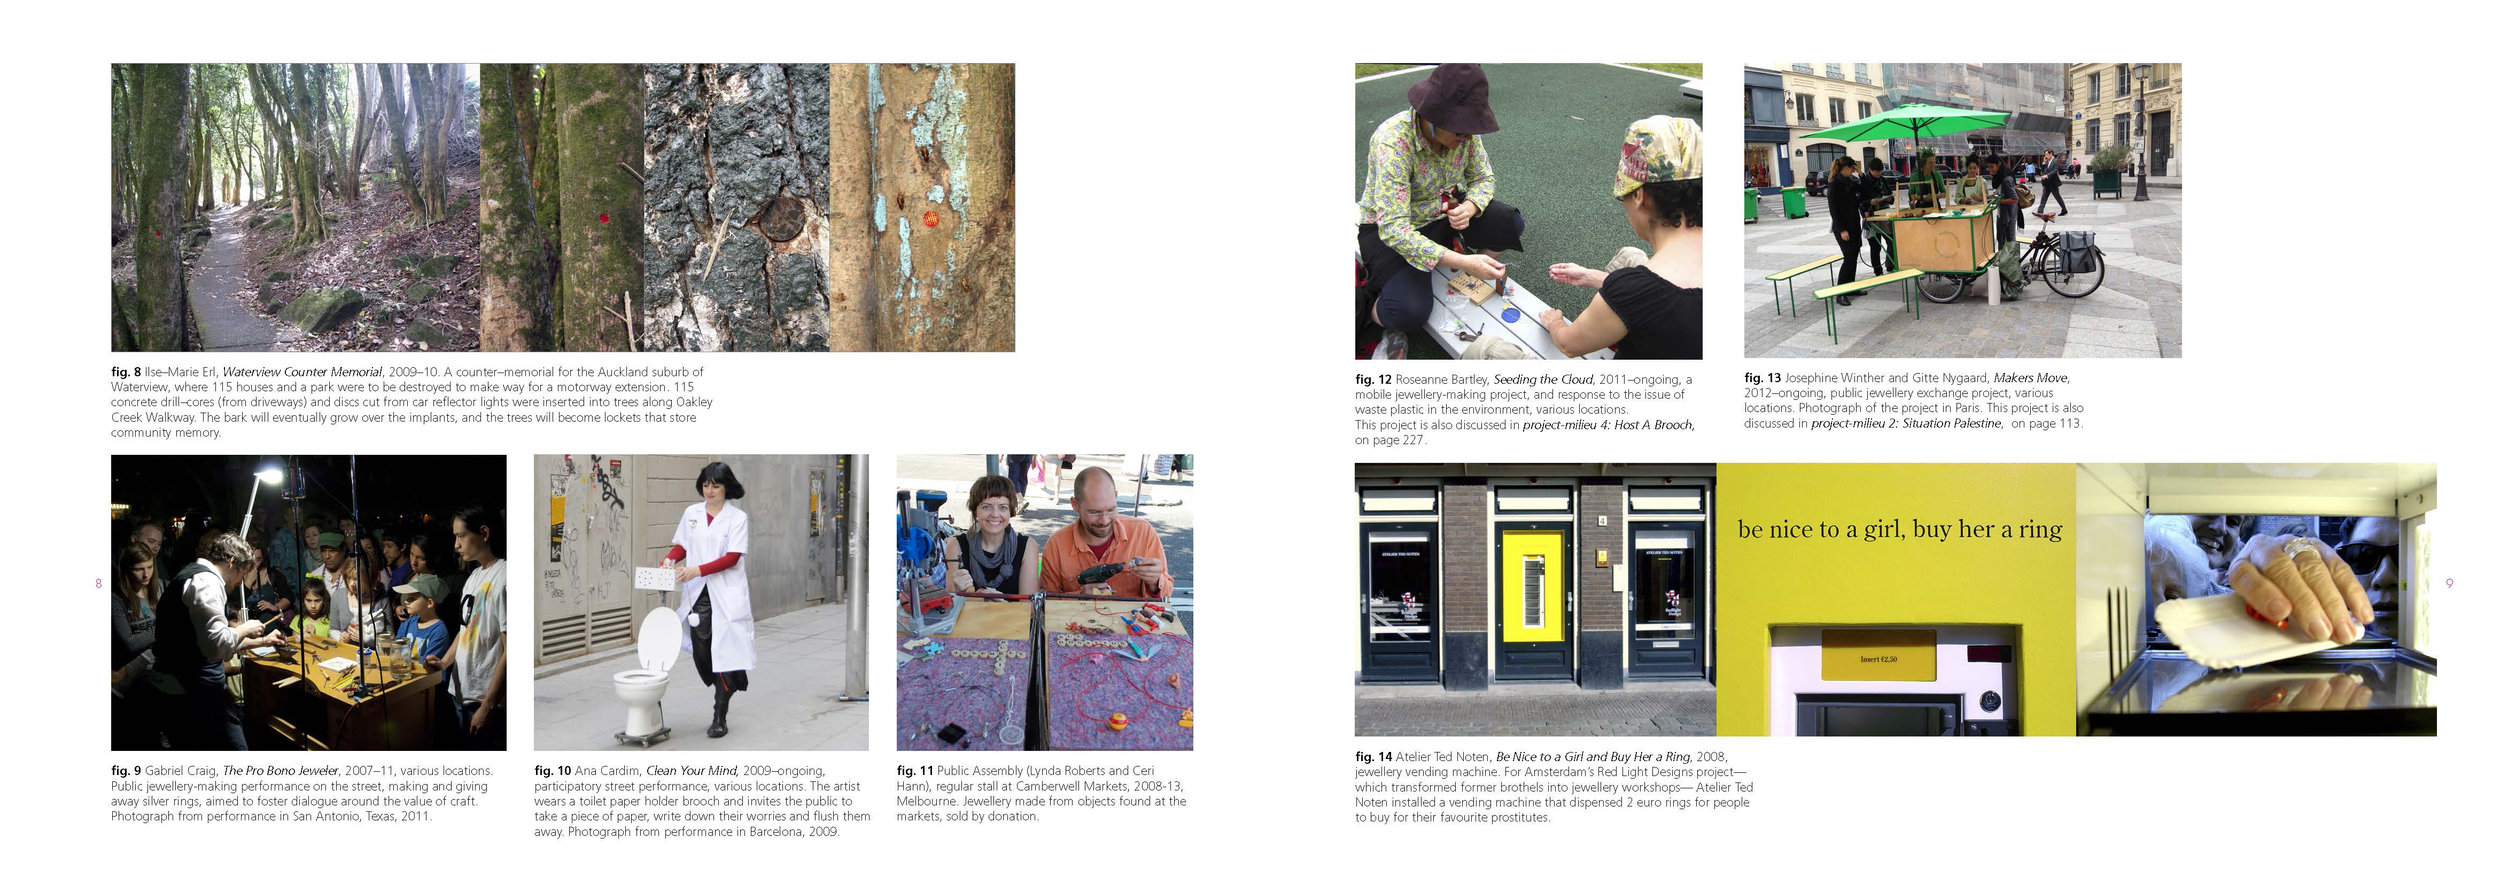 Jacqui Chan_jewellery in the urban milieu_part 1_intro + project milieu 01_Page_19.jpg